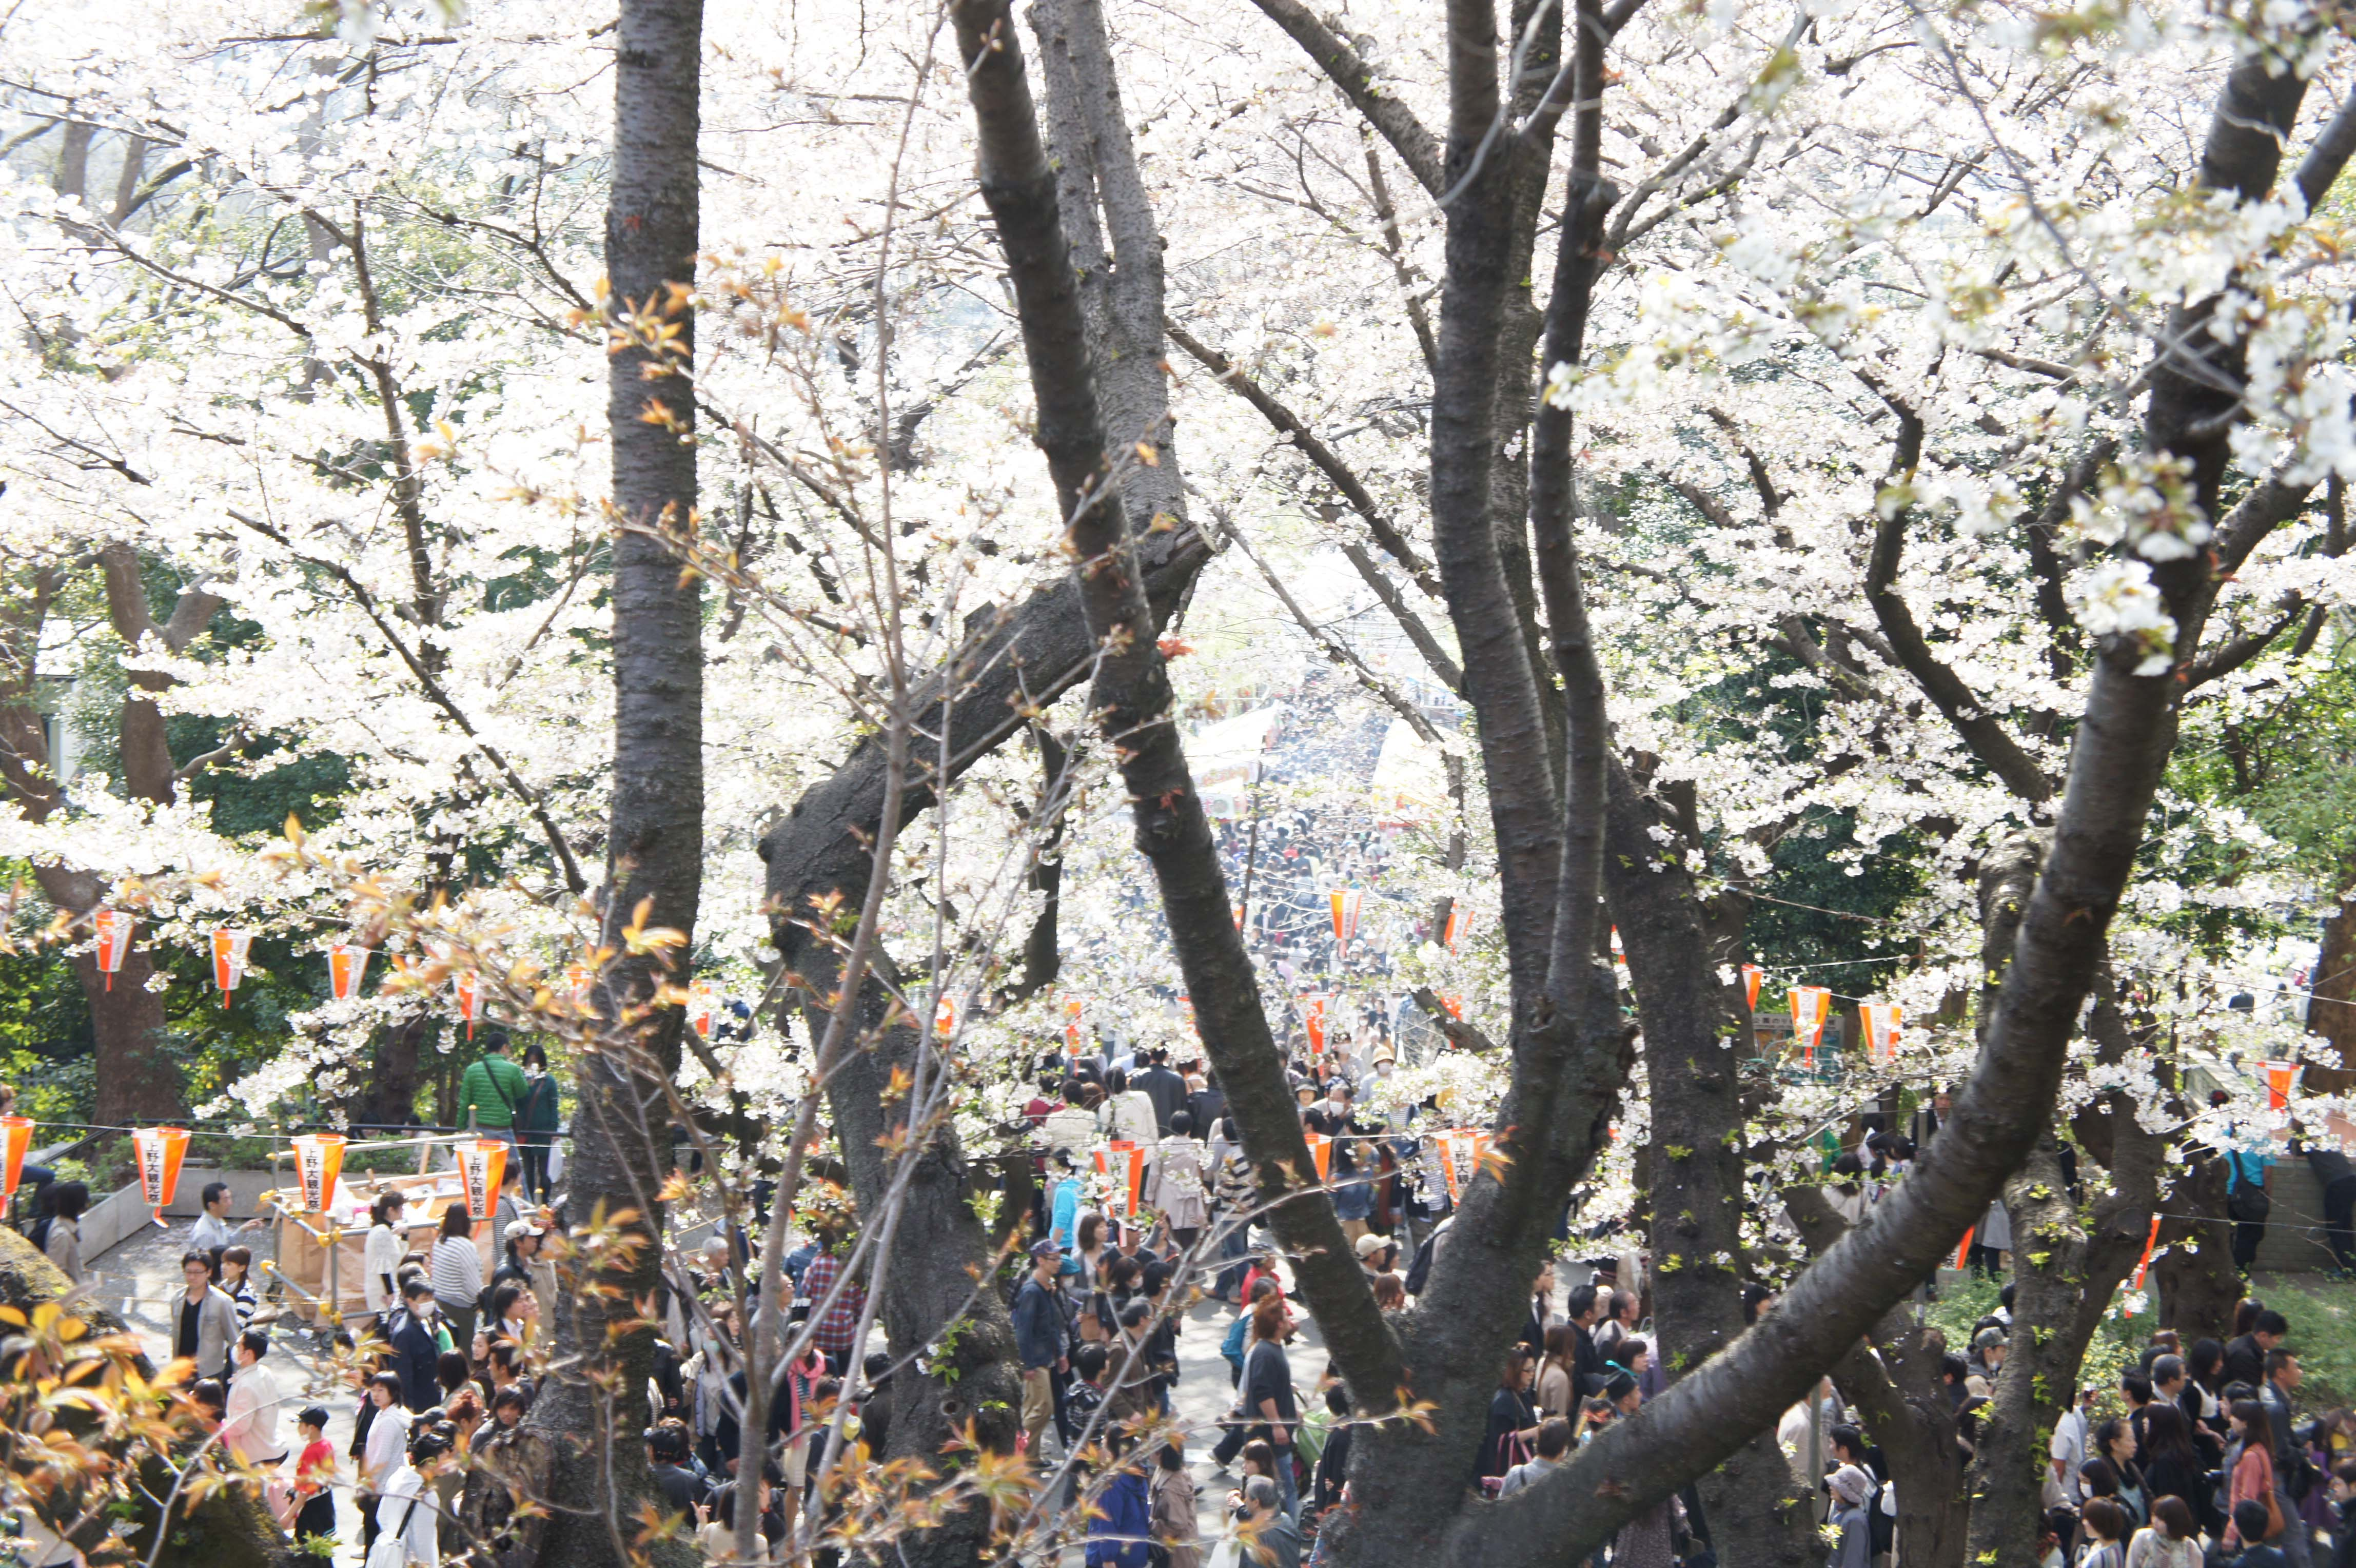 Ueno Park completely packed. You can see that even the tiniest dots in the center of the photo are people's heads